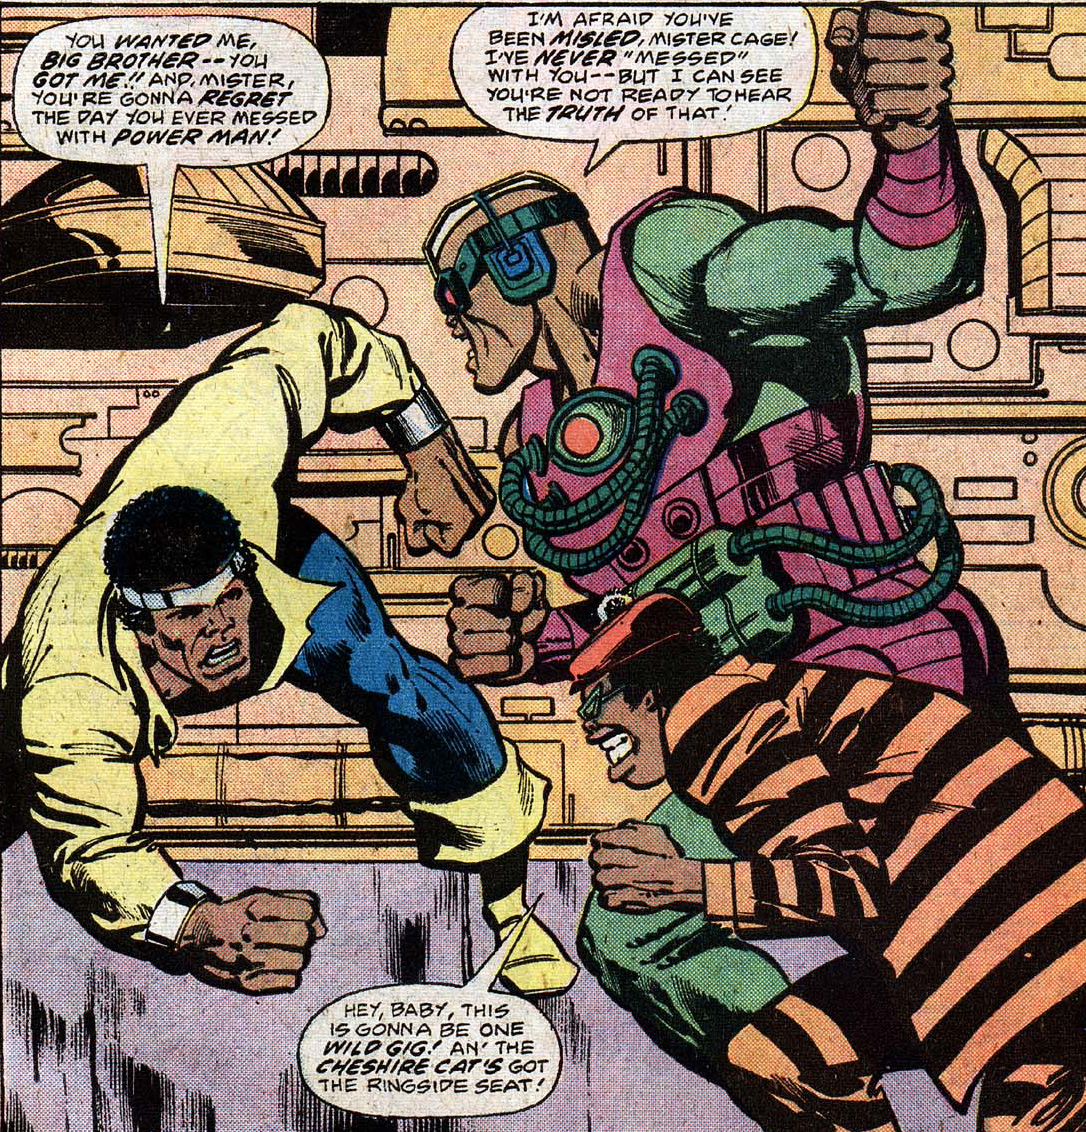 Gone   Forgotten  The Many Foes of Luke Cage  Power Man  Part 5  The Many Foes of Luke Cage  Power Man  Part 5